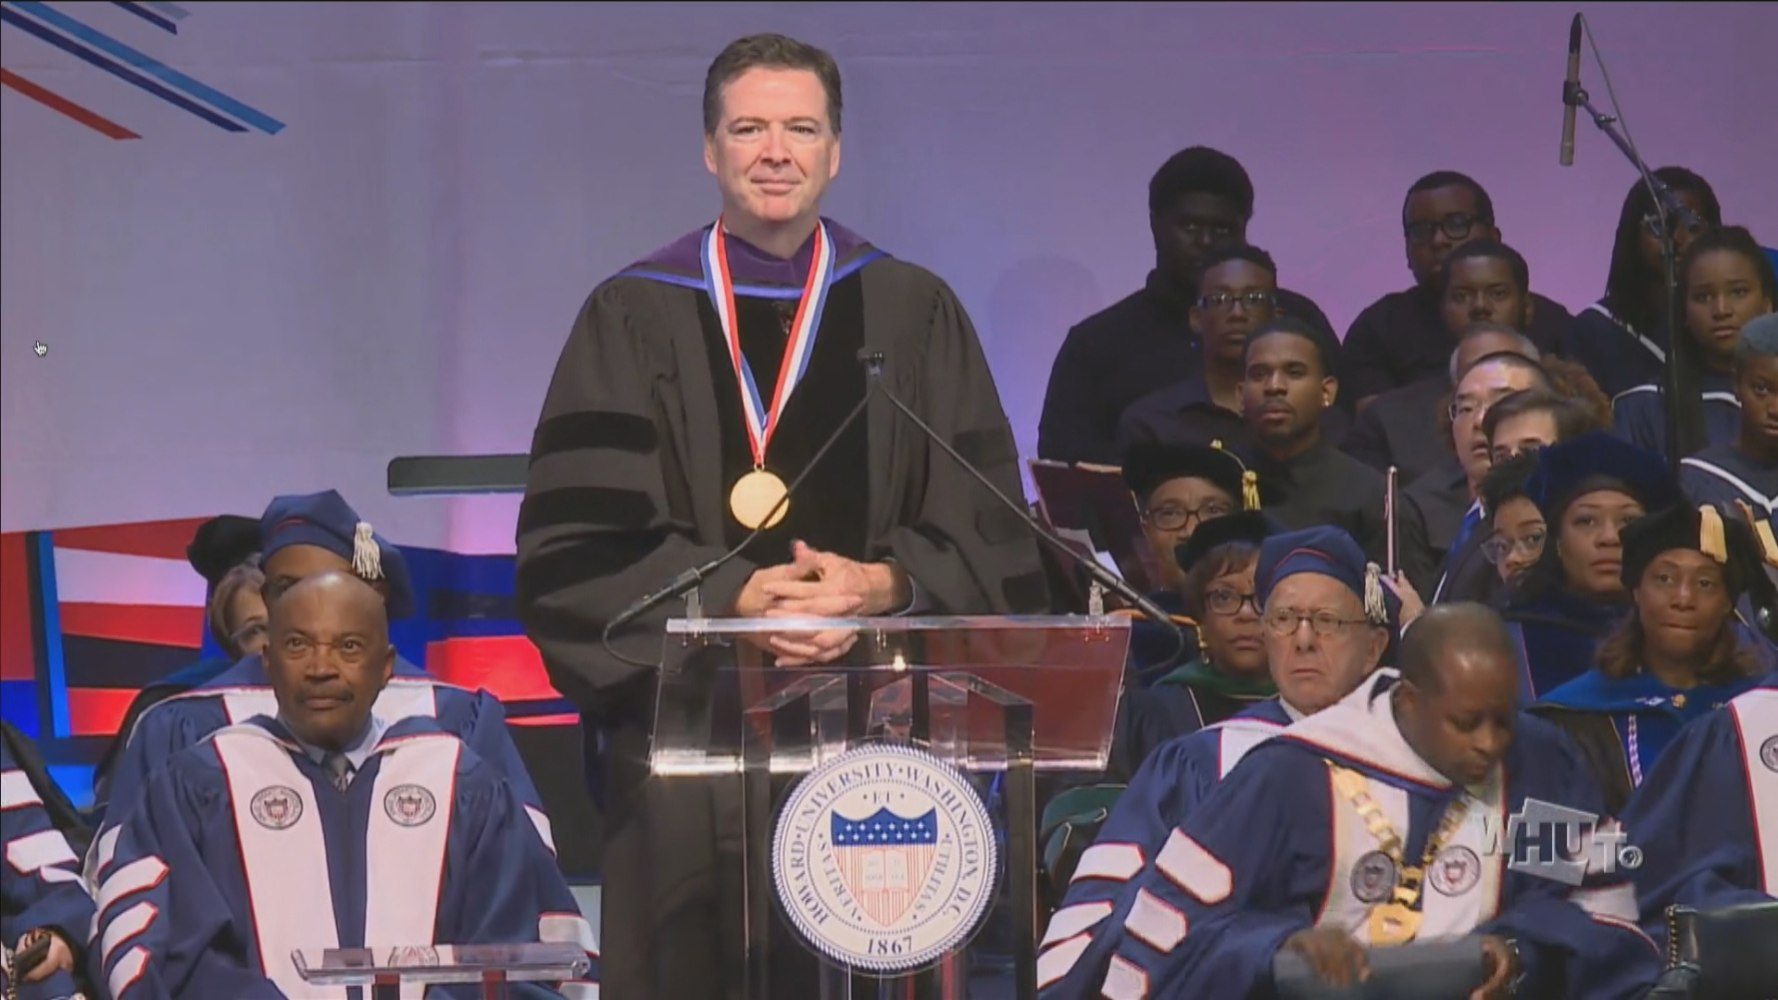 Comey convocation address derailed by angry protesters at Howard University